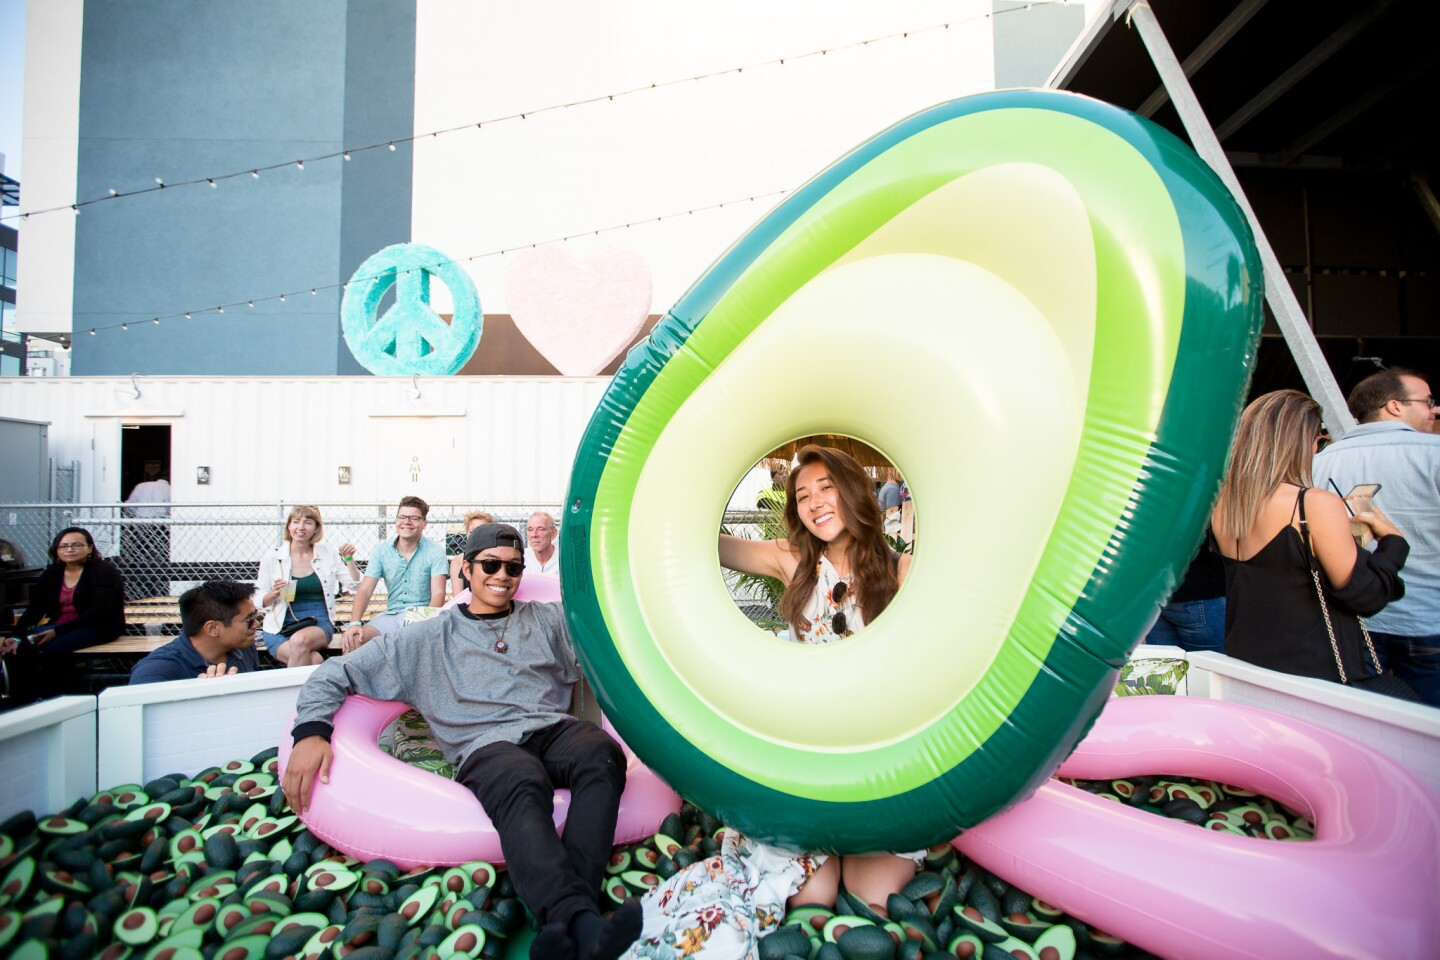 Avolution Fest at Quartyard celebrated all things avocado including art installations, live entertainment and plenty of mushy green treats for gustatory enjoyment on June 9, 2018.